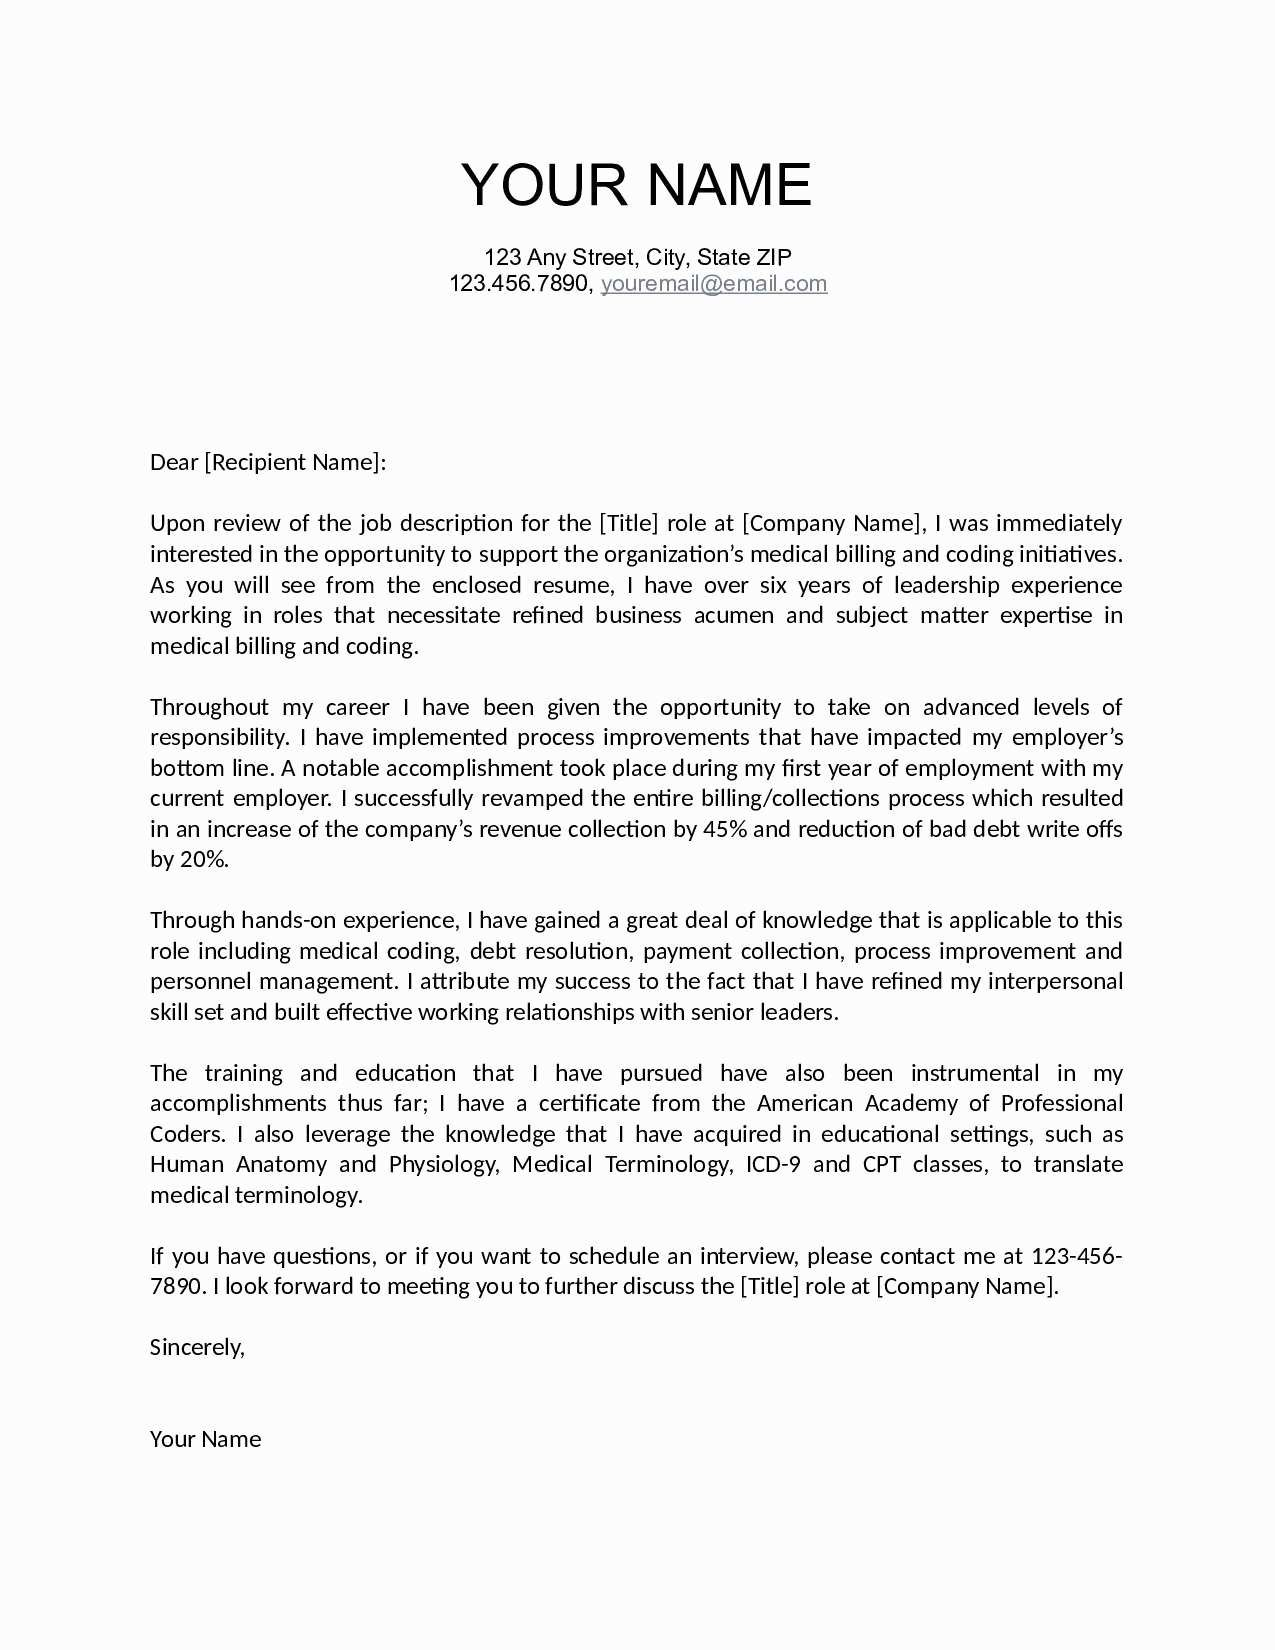 Email Sales Letter Template - Sample Cover Letter for Senior Sales Position Valid Job Fer Letter